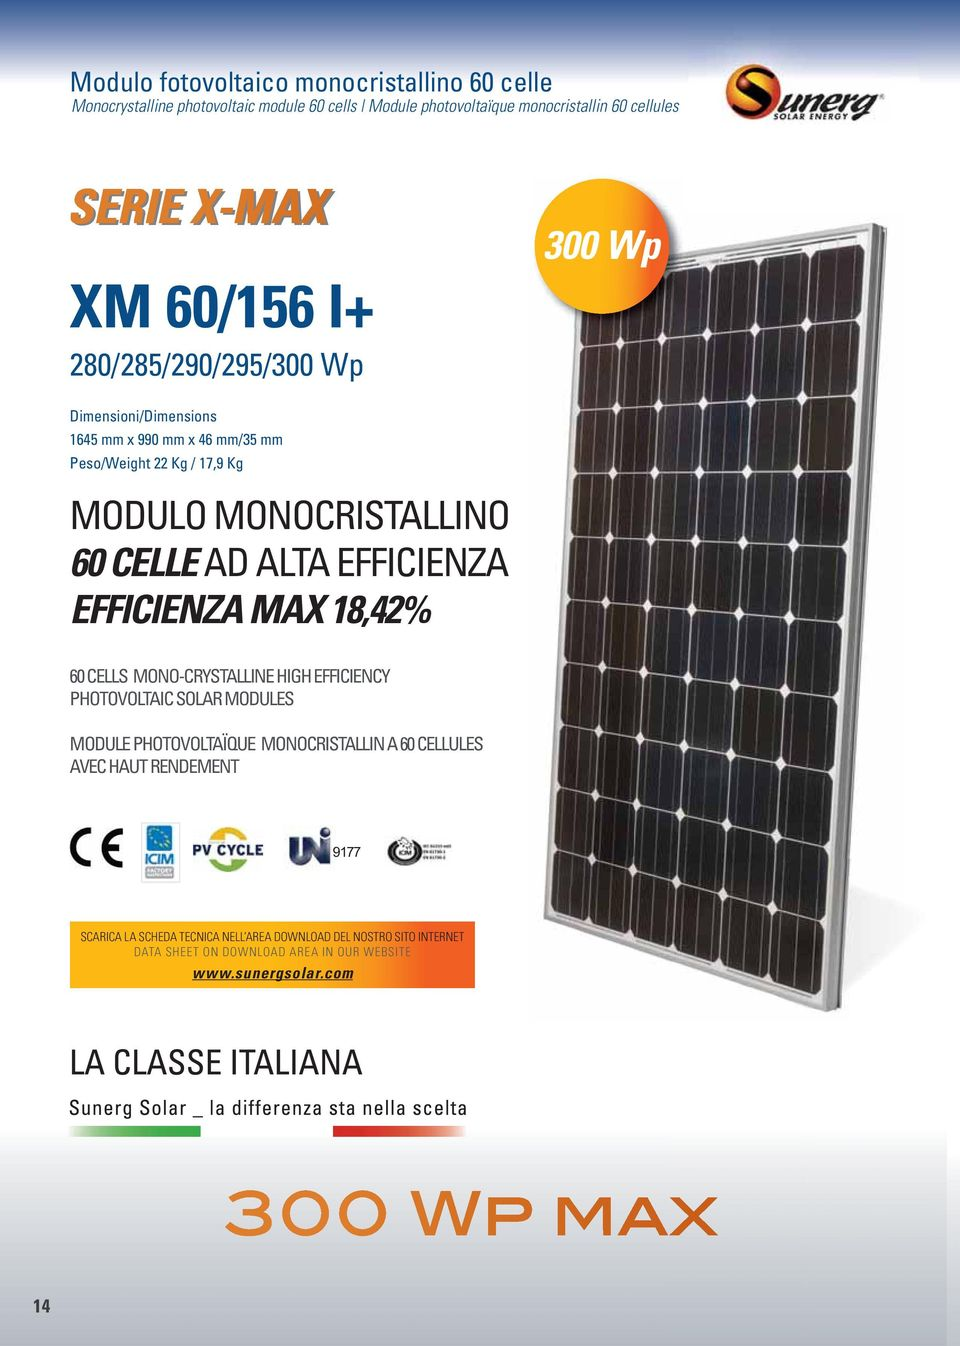 ALTA EFFICIENZA EFFICIENZA MAX 18,42% 60 CELLS MONO-CRYSTALLINE HIGH EFFICIENCY PHOTOVOLTAIC SOLAR MODULES MODULE PHOTOVOLTAÏQUE MONOCRISTALLIN A 60